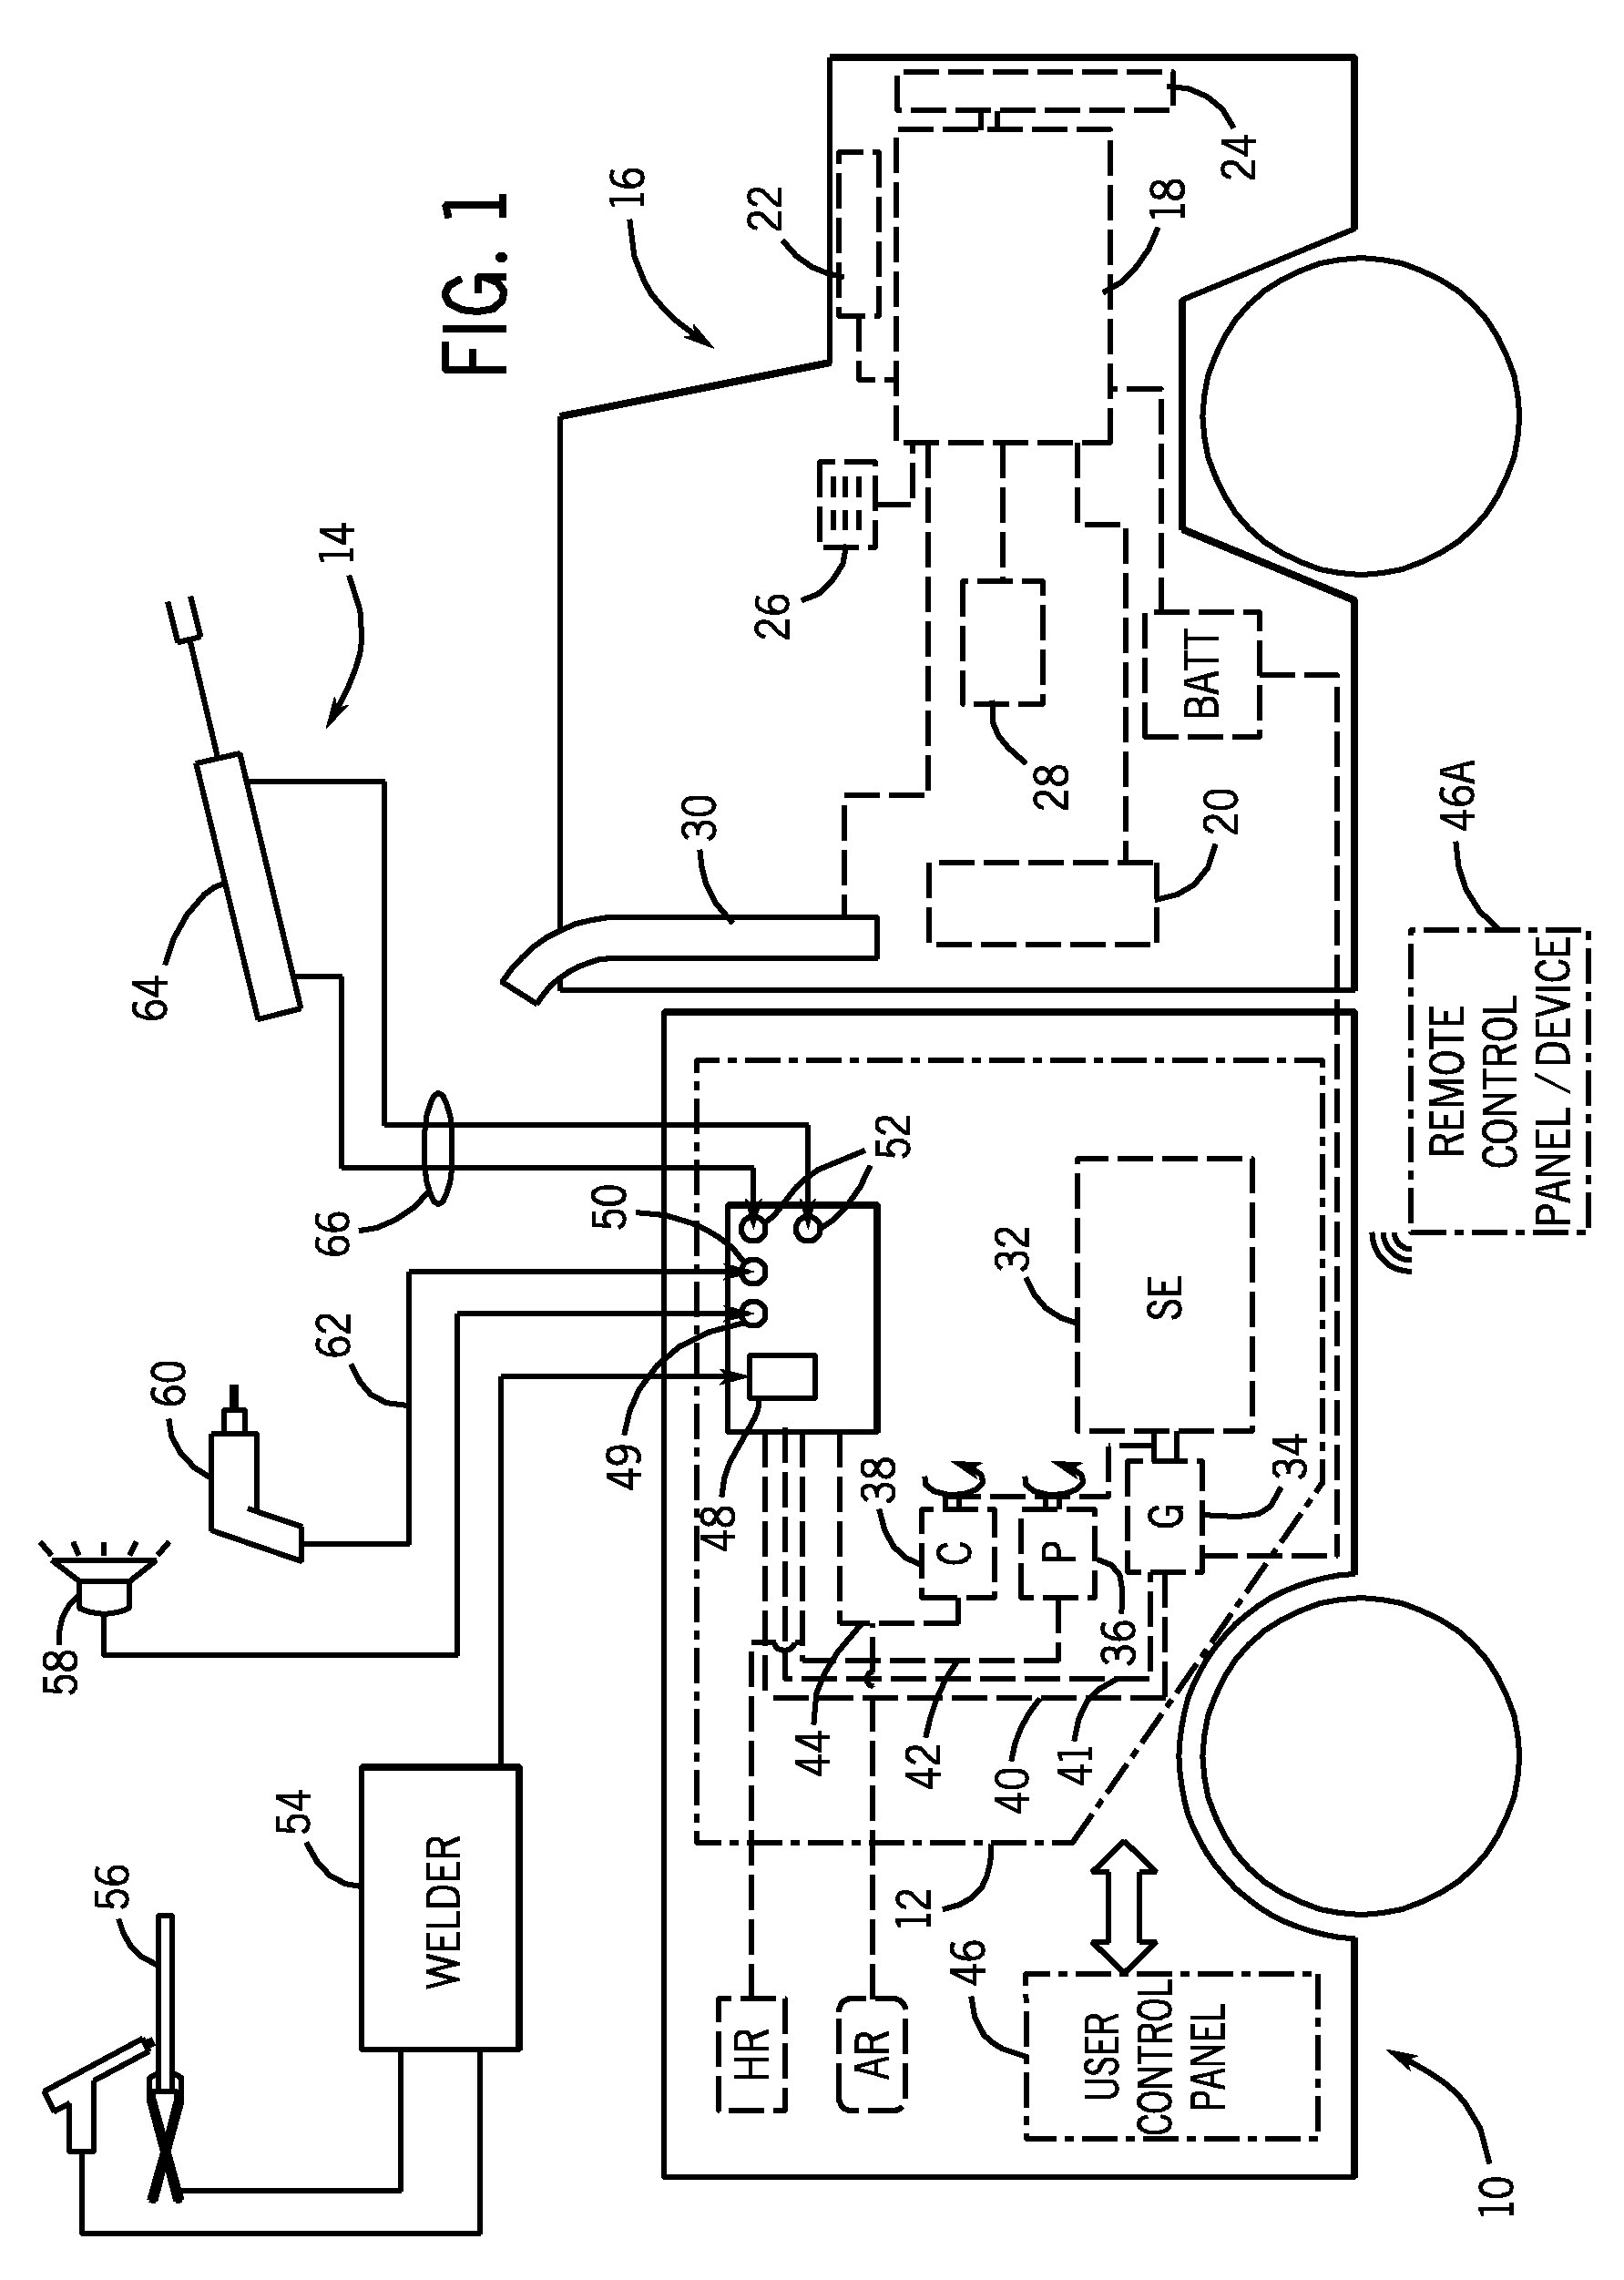 12v Wiring Diagram For Hydraulic Motor